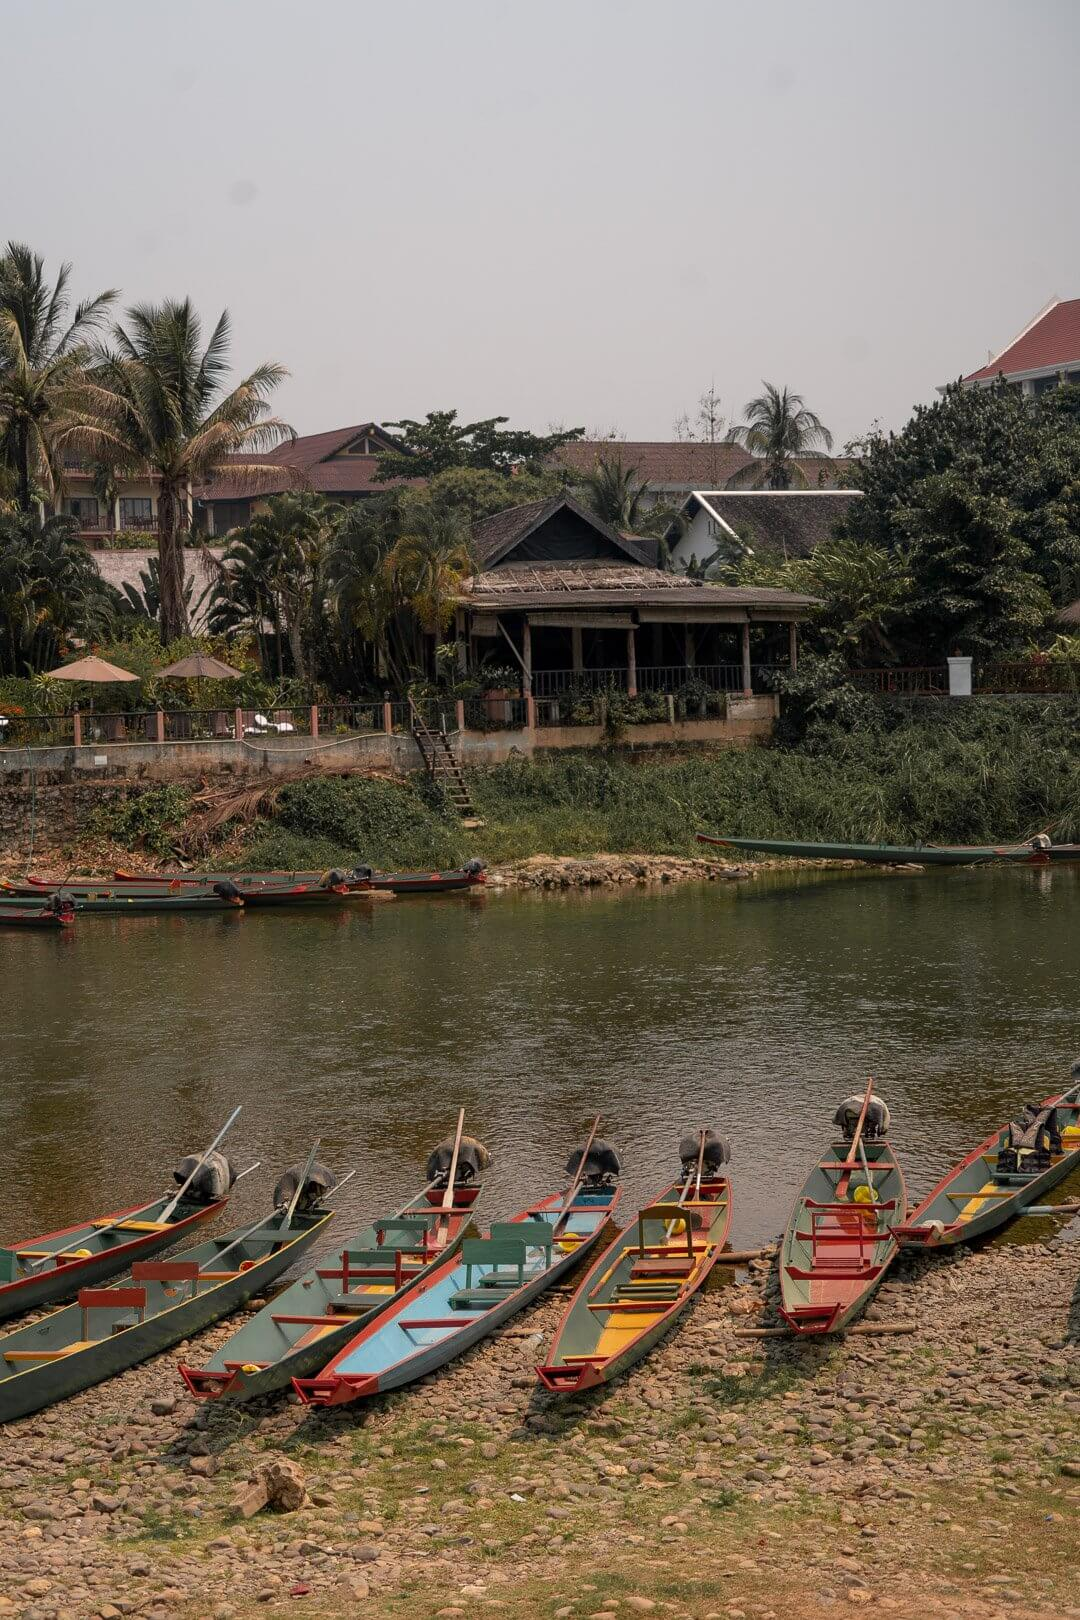 Boats along the Nam Song river in Laos